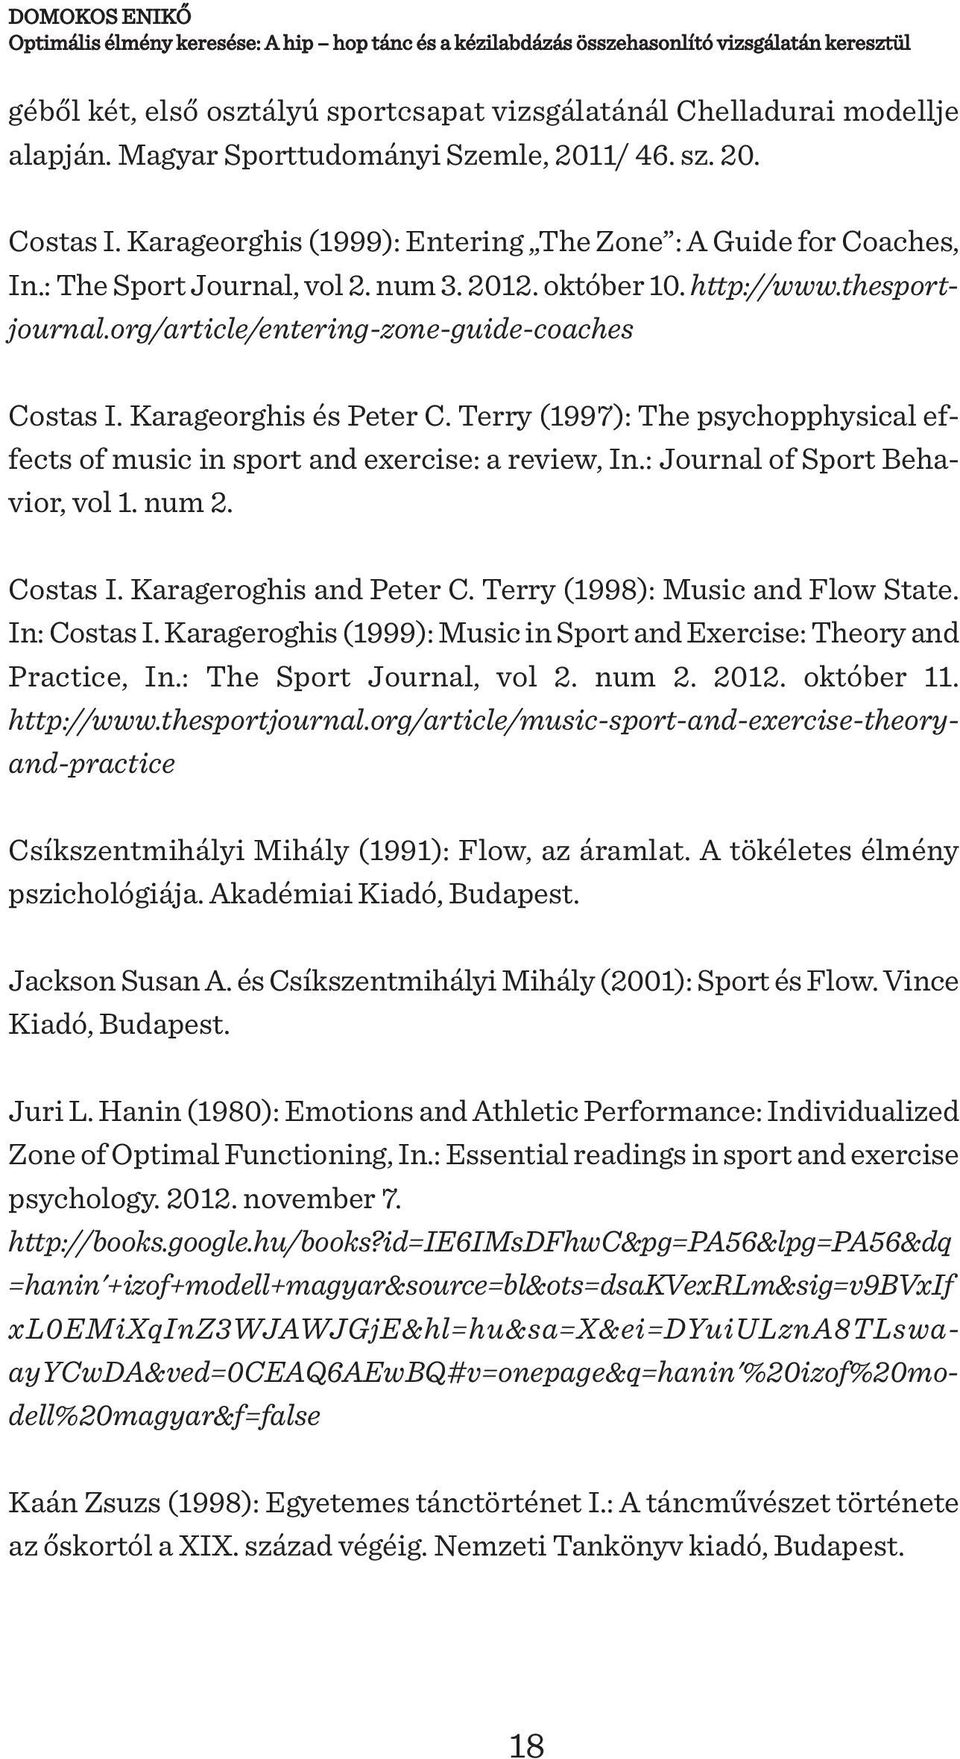 thesportjournal.org/article/entering-zone-guide-coaches Costas I. Karageorghis és Peter C. Terry (1997): The psychopphysical effects of music in sport and exercise: a review, In.